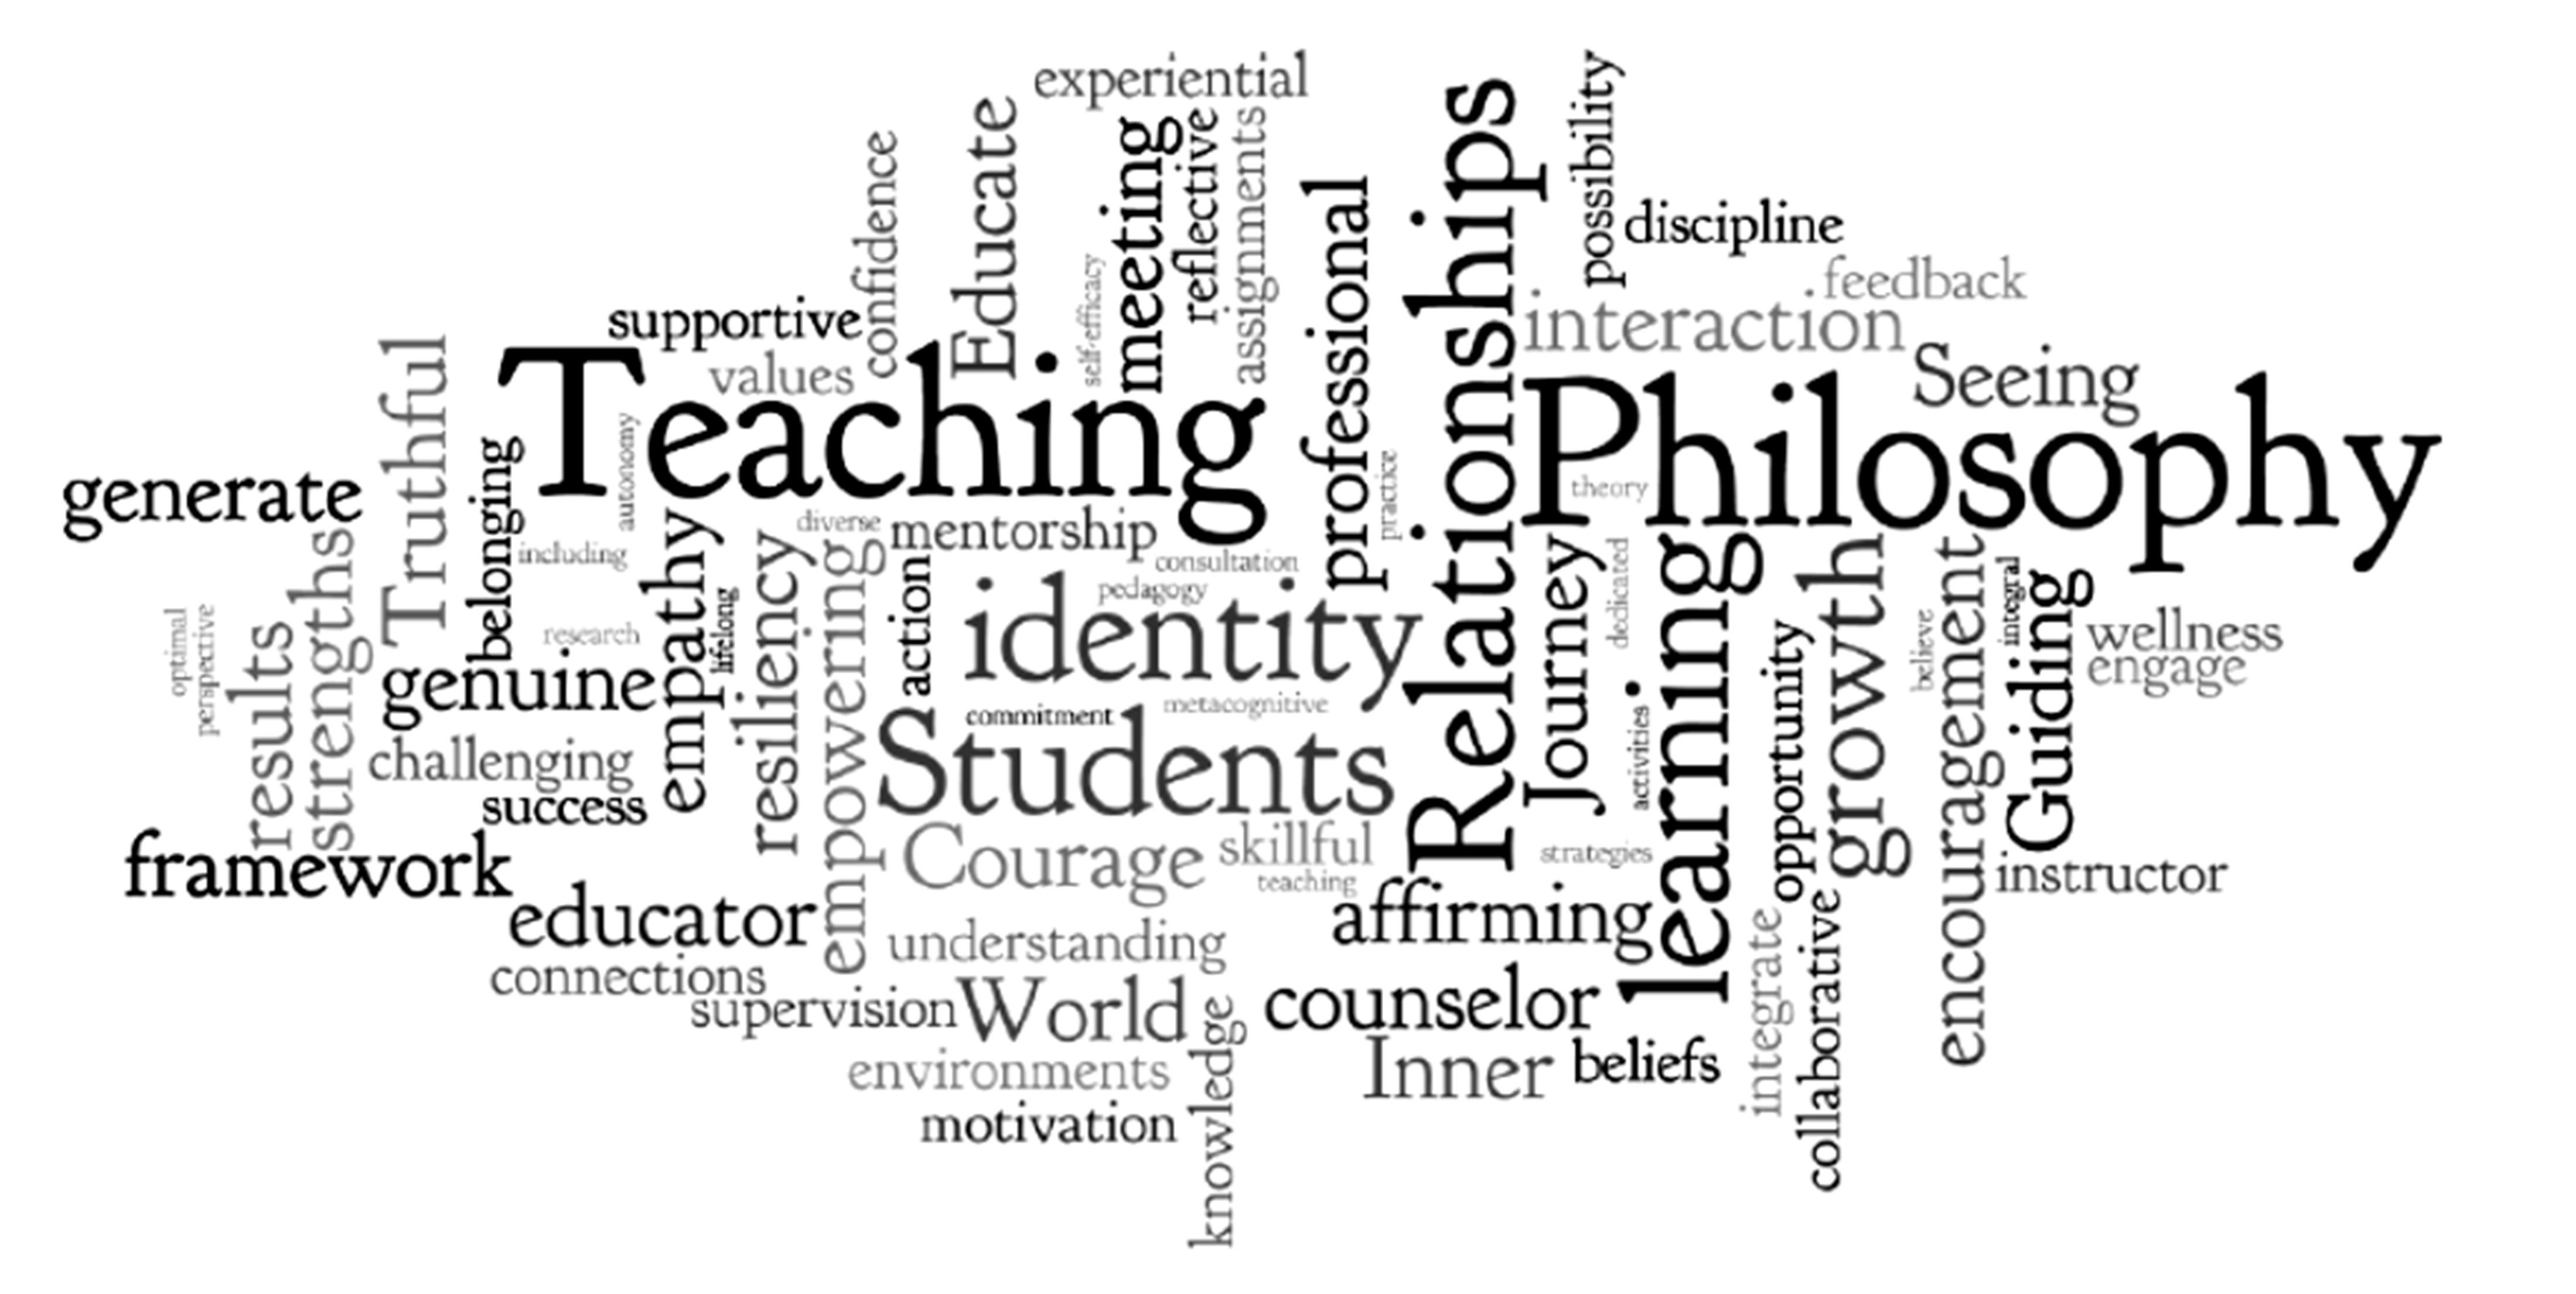 own philosophy on education Forming an educational philosophy can help students perceive their goals and subsequently increase their efficiency at school.